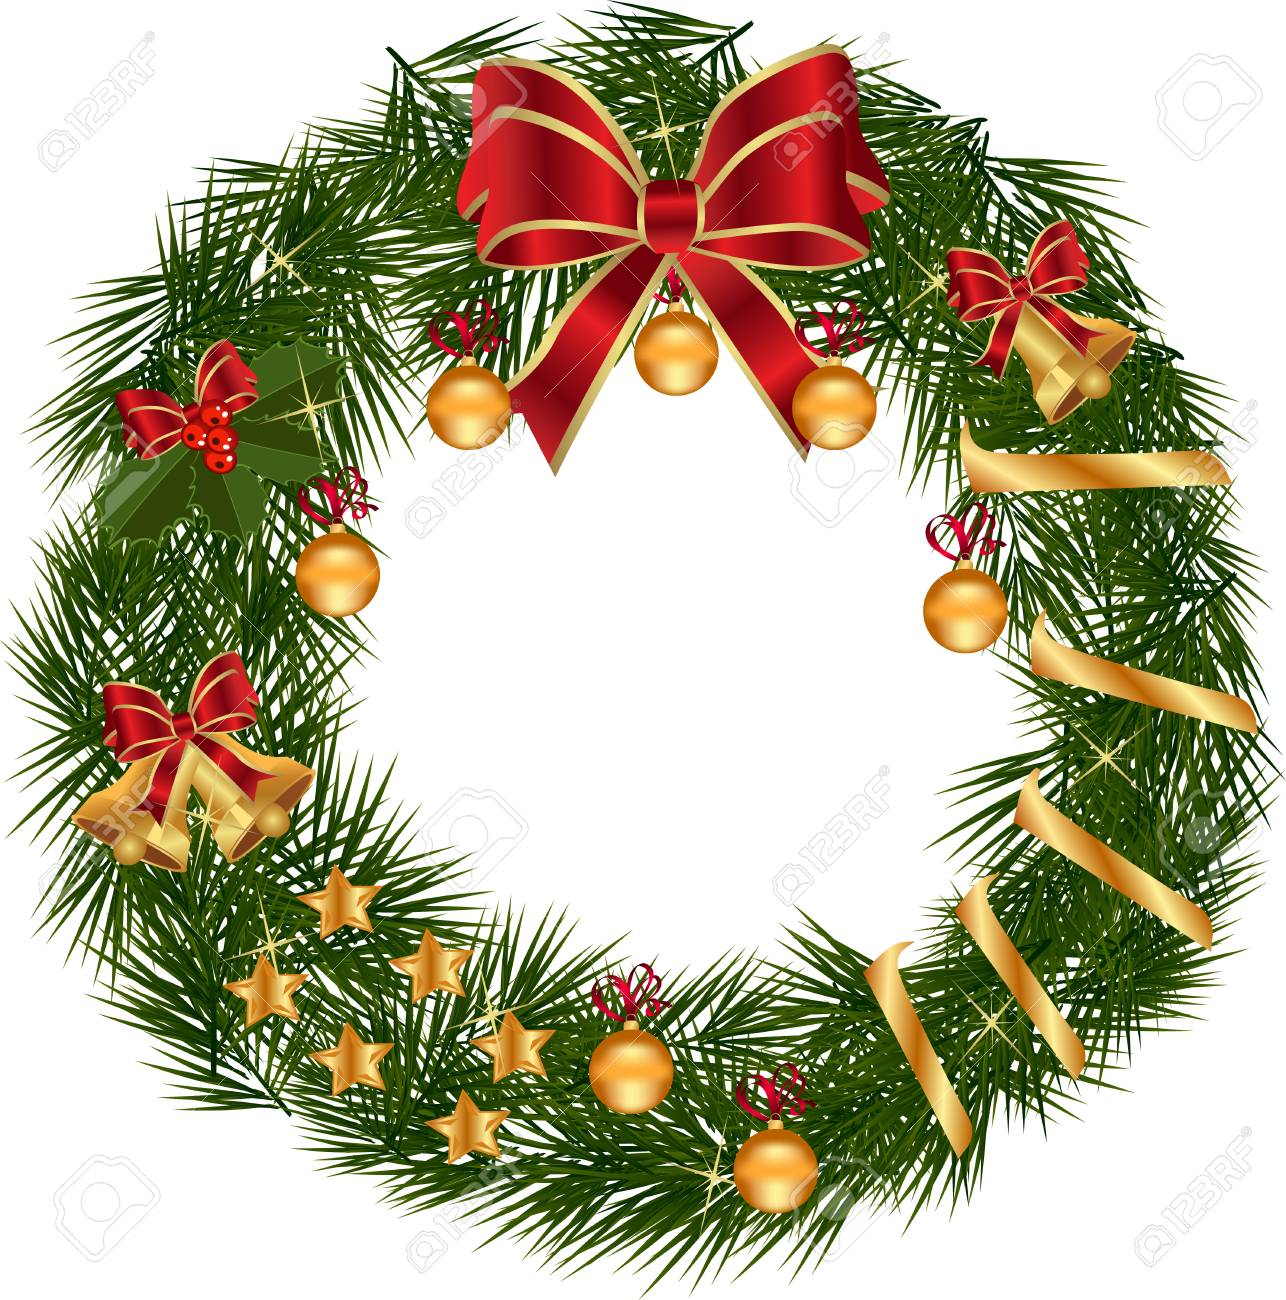 Image result for wreath white background